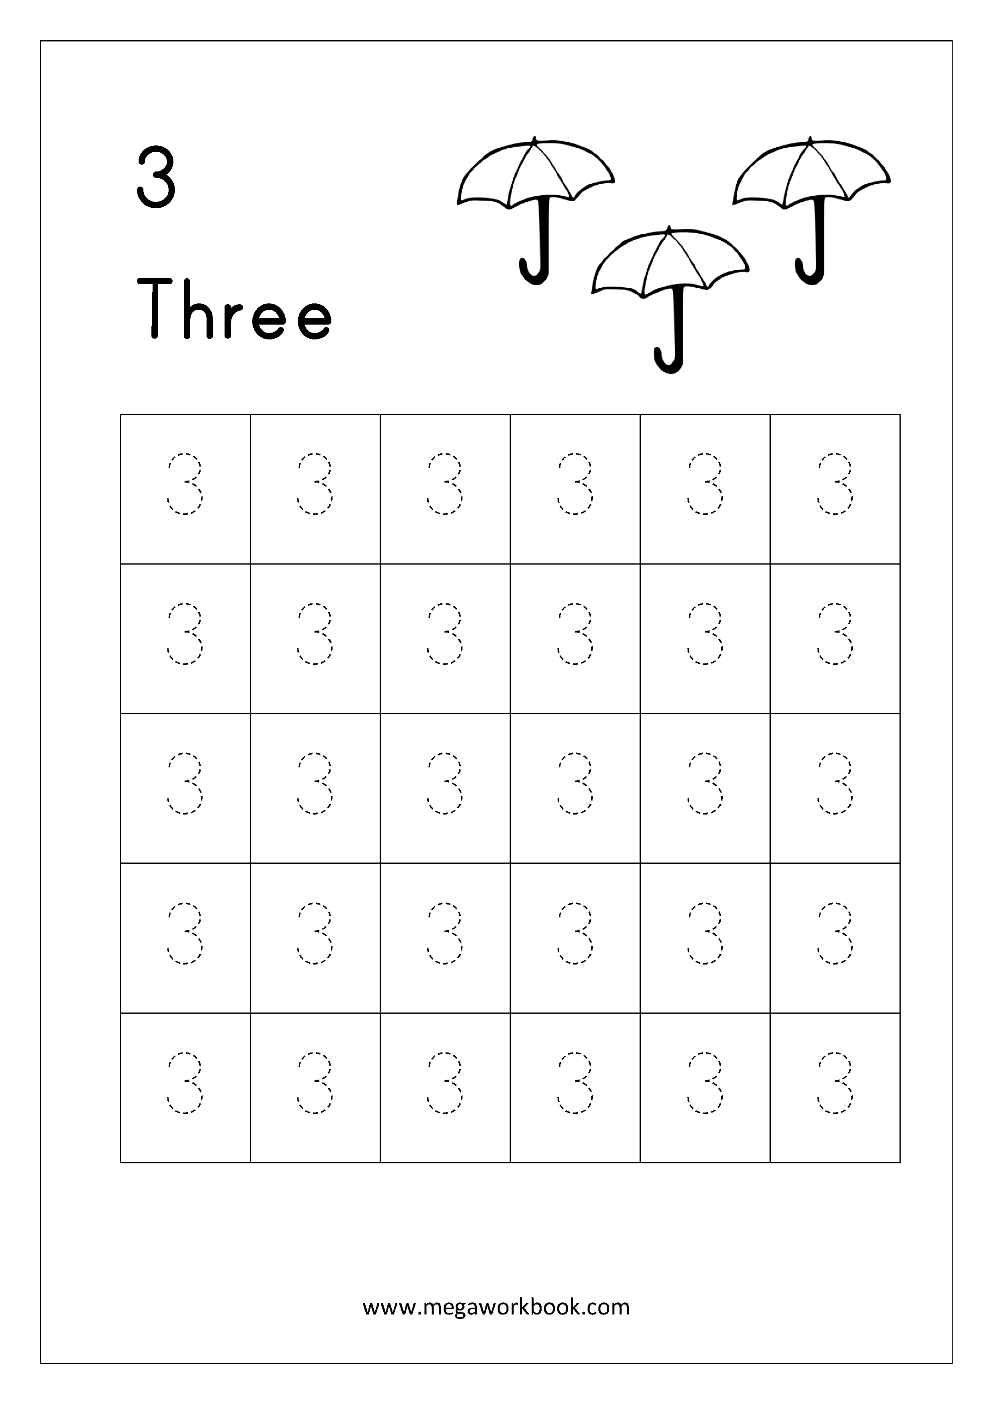 Free Printable Number Tracing And Writing (1-10) Worksheets - Number | Printable Number Tracing Worksheets